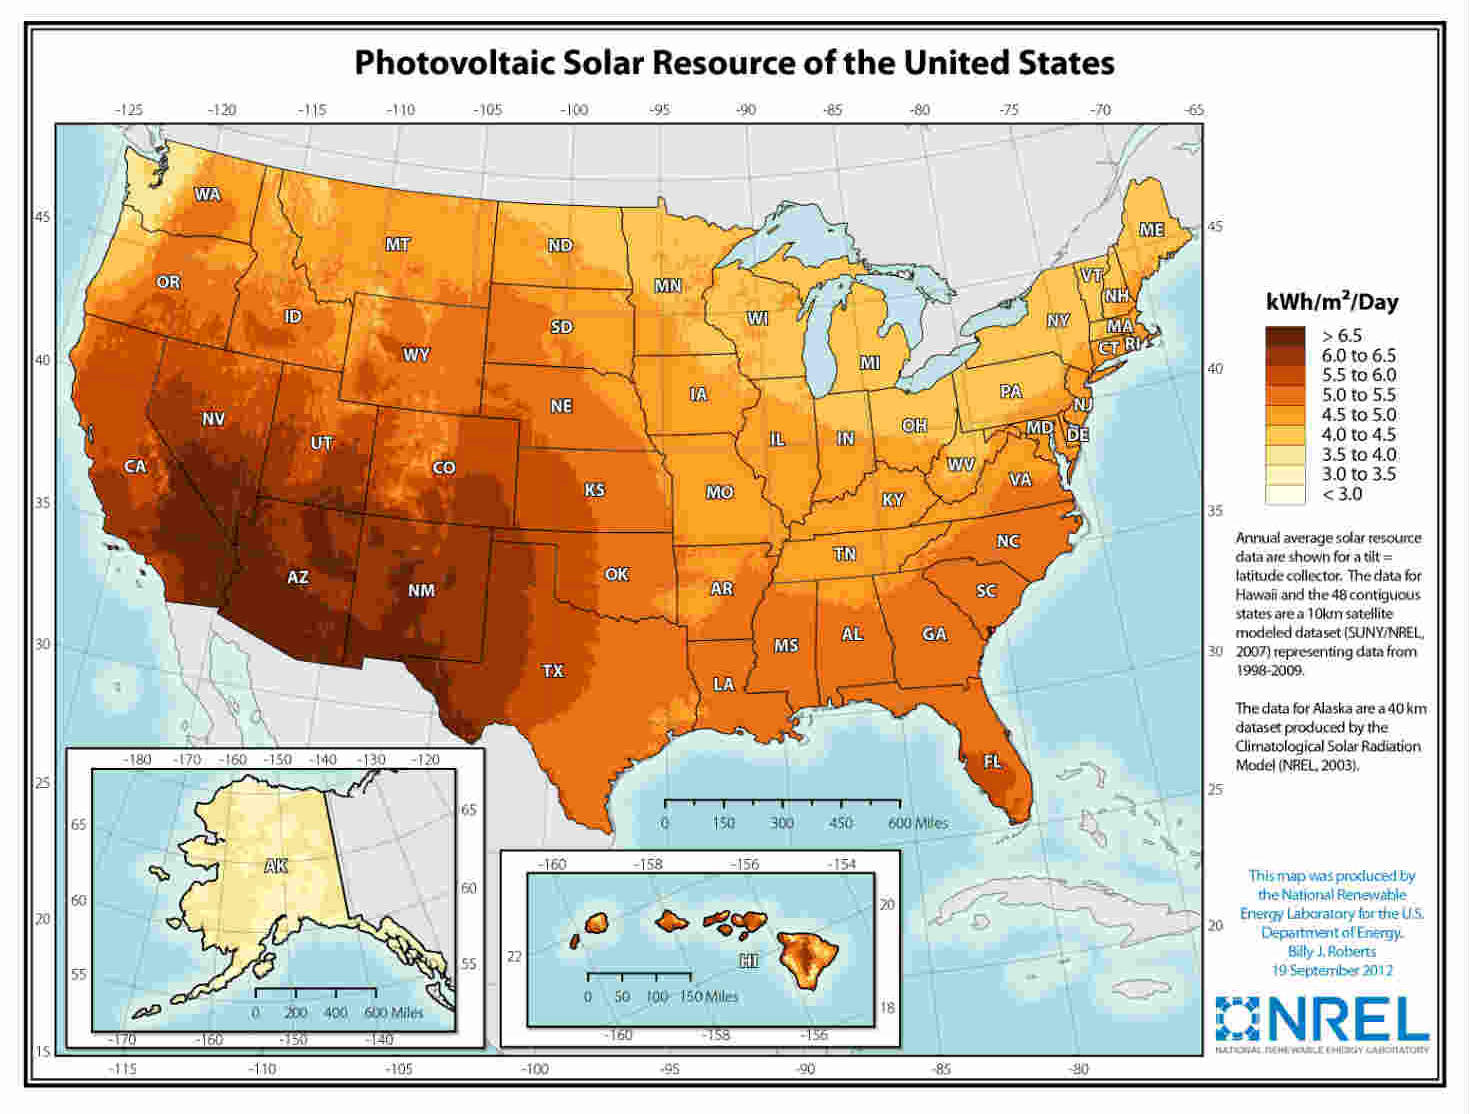 NREL map of solar power production potential across the U.S.